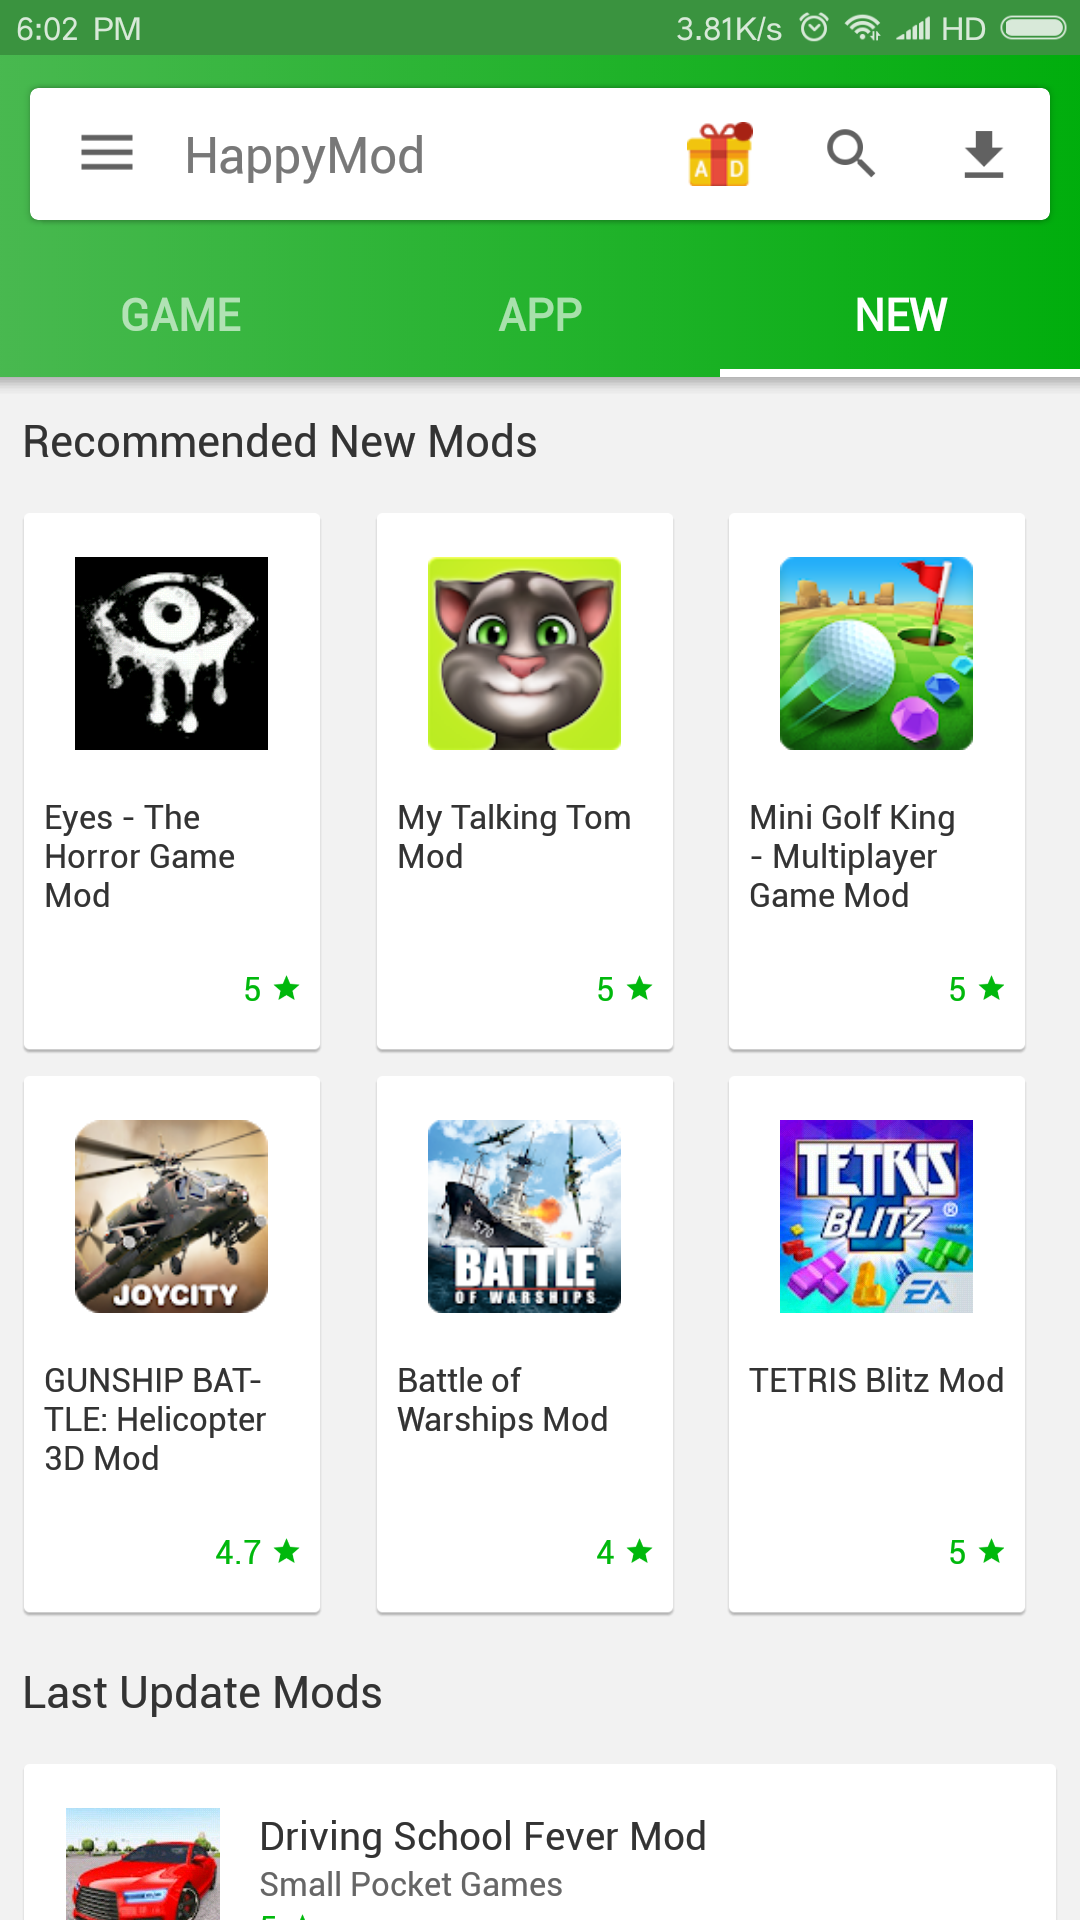 Roblox 160 Robux Direct Top Up 160 Robux This Is Not A Gift Card Or A Code Direct Top Up Only Happymod Apk Roblox Download App Download